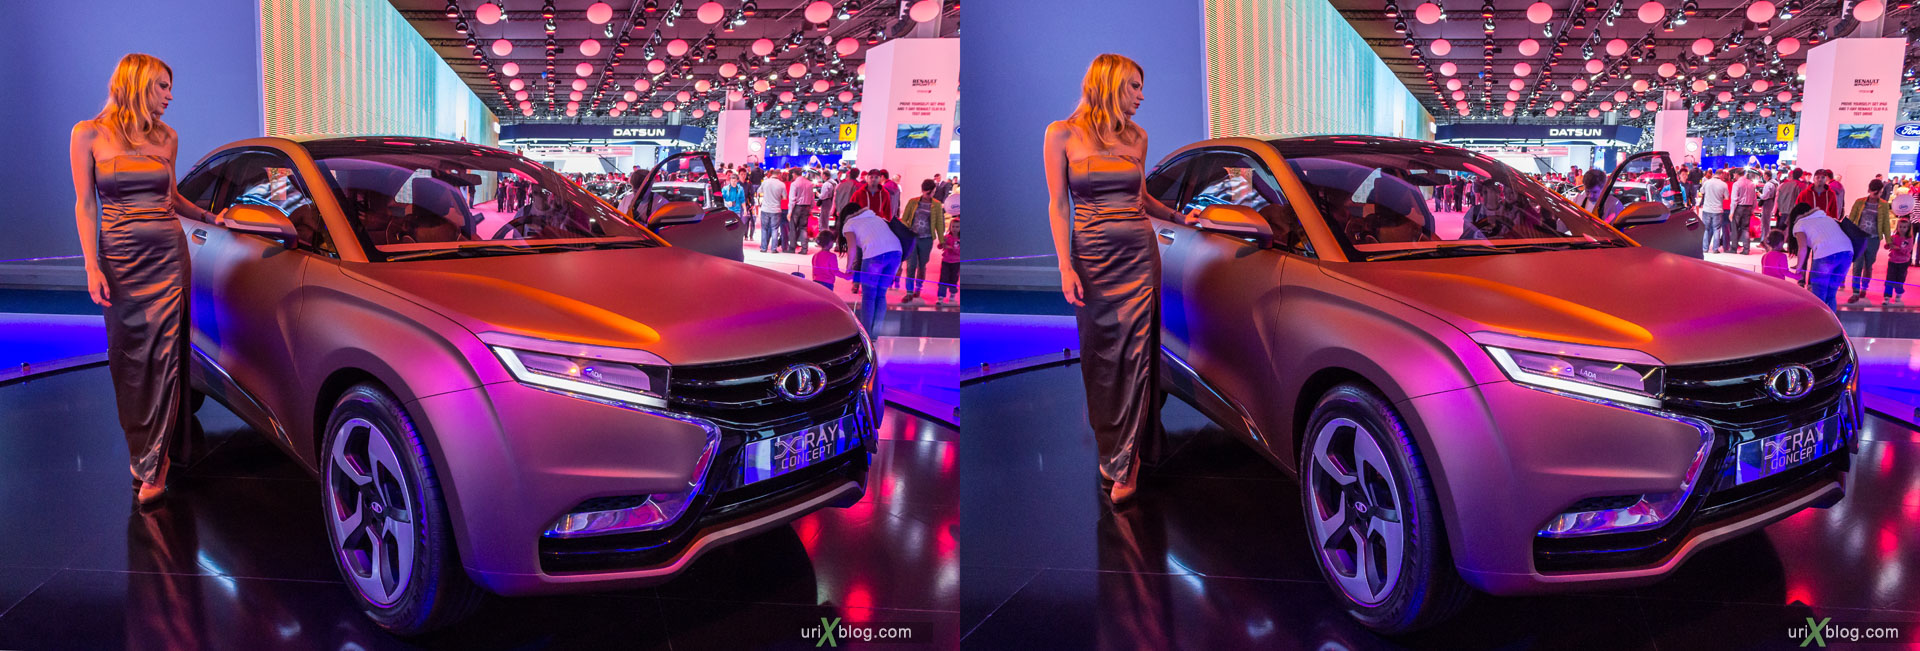 Lada Xray Concept, Moscow International Automobile Salon 2014, MIAS 2014, girls, models, Crocus Expo, Moscow, Russia, 3D, stereo pair, cross-eyed, crossview, cross view stereo pair, stereoscopic, 2014